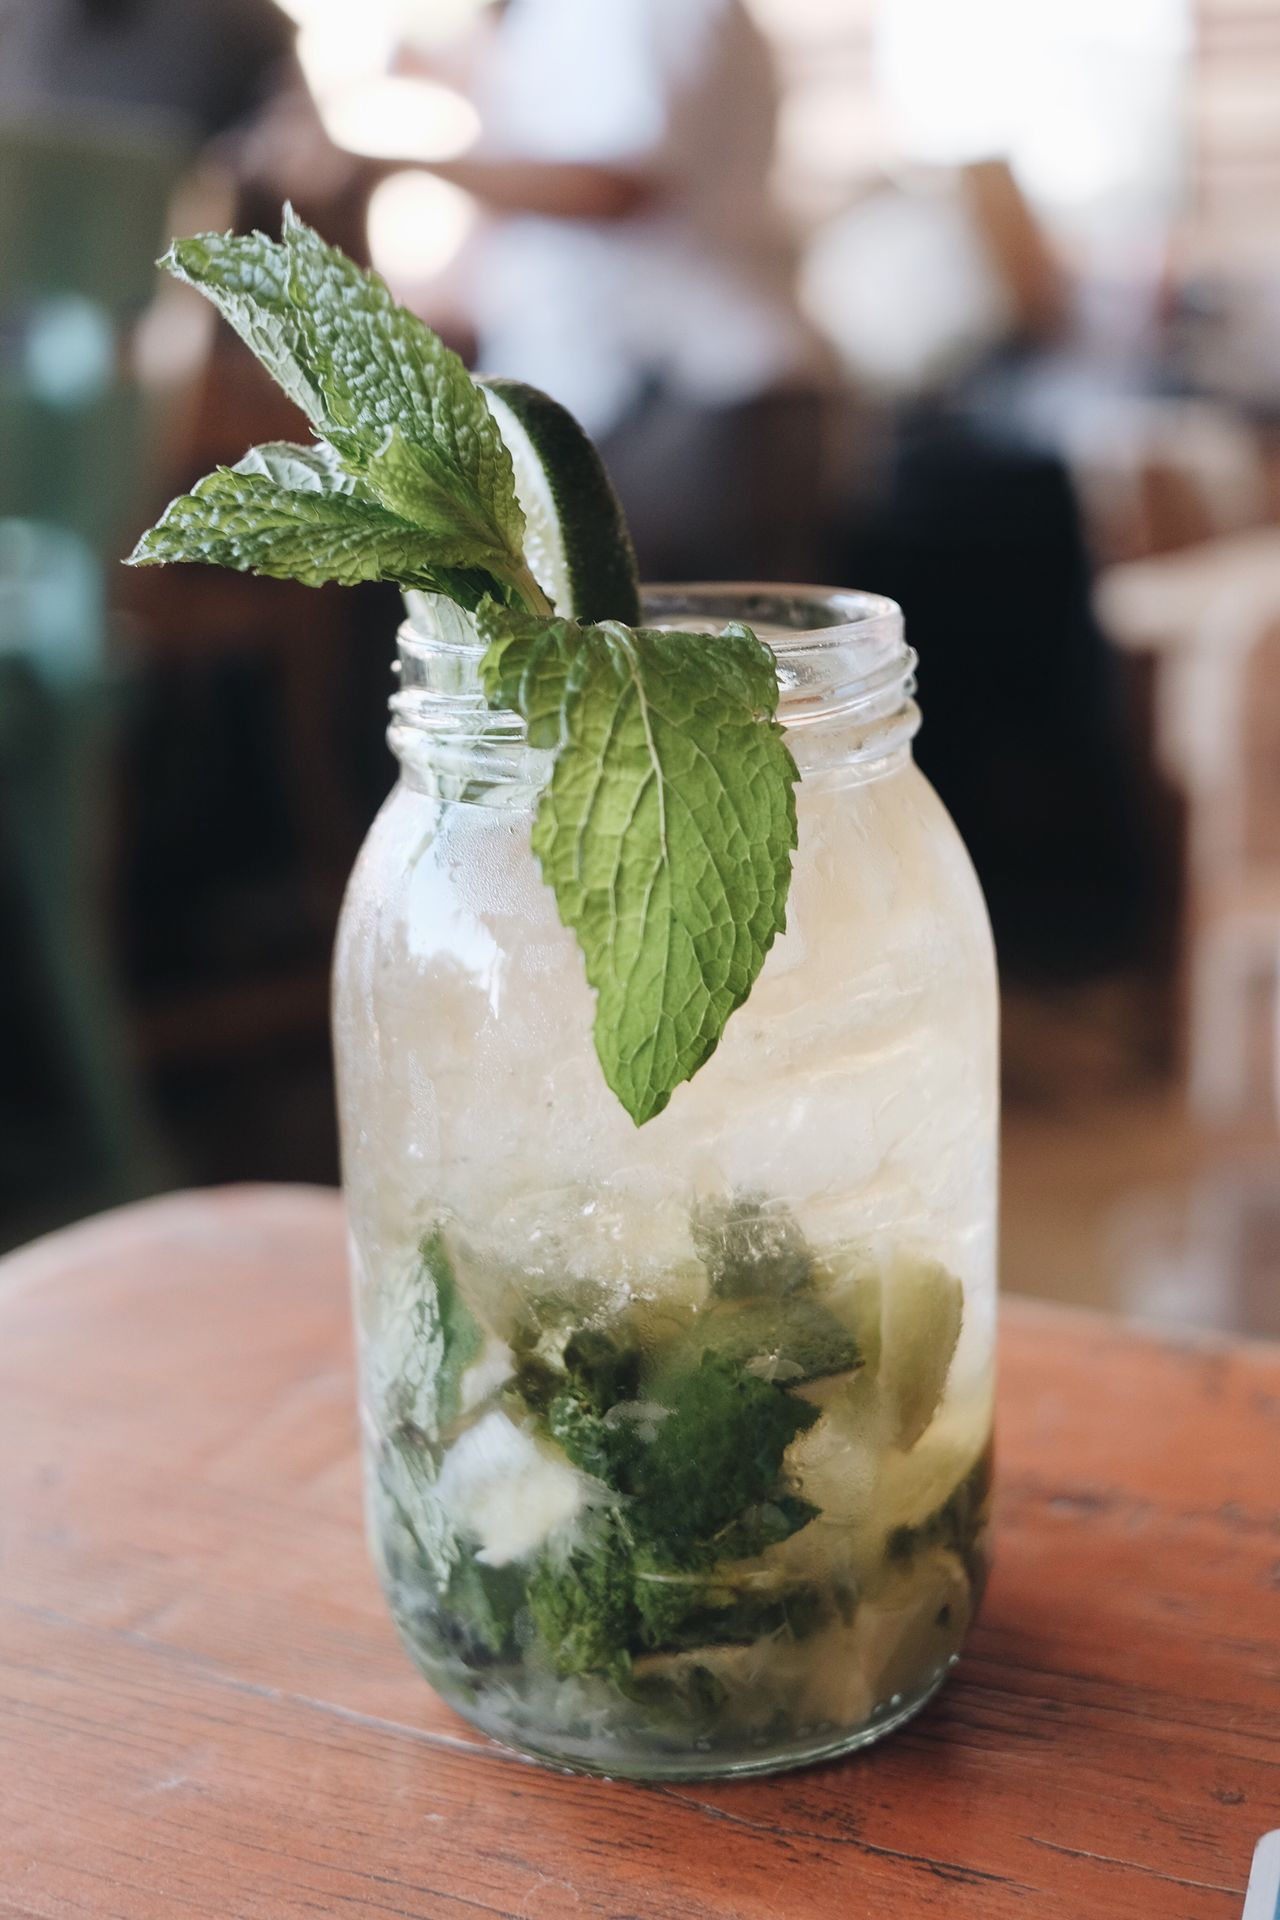 Mojito Focus On Foreground Freshness Table Food And Drink Close-up Mint Leaf - Culinary Leaf No People Indoors  Mint Tea Day Mojito